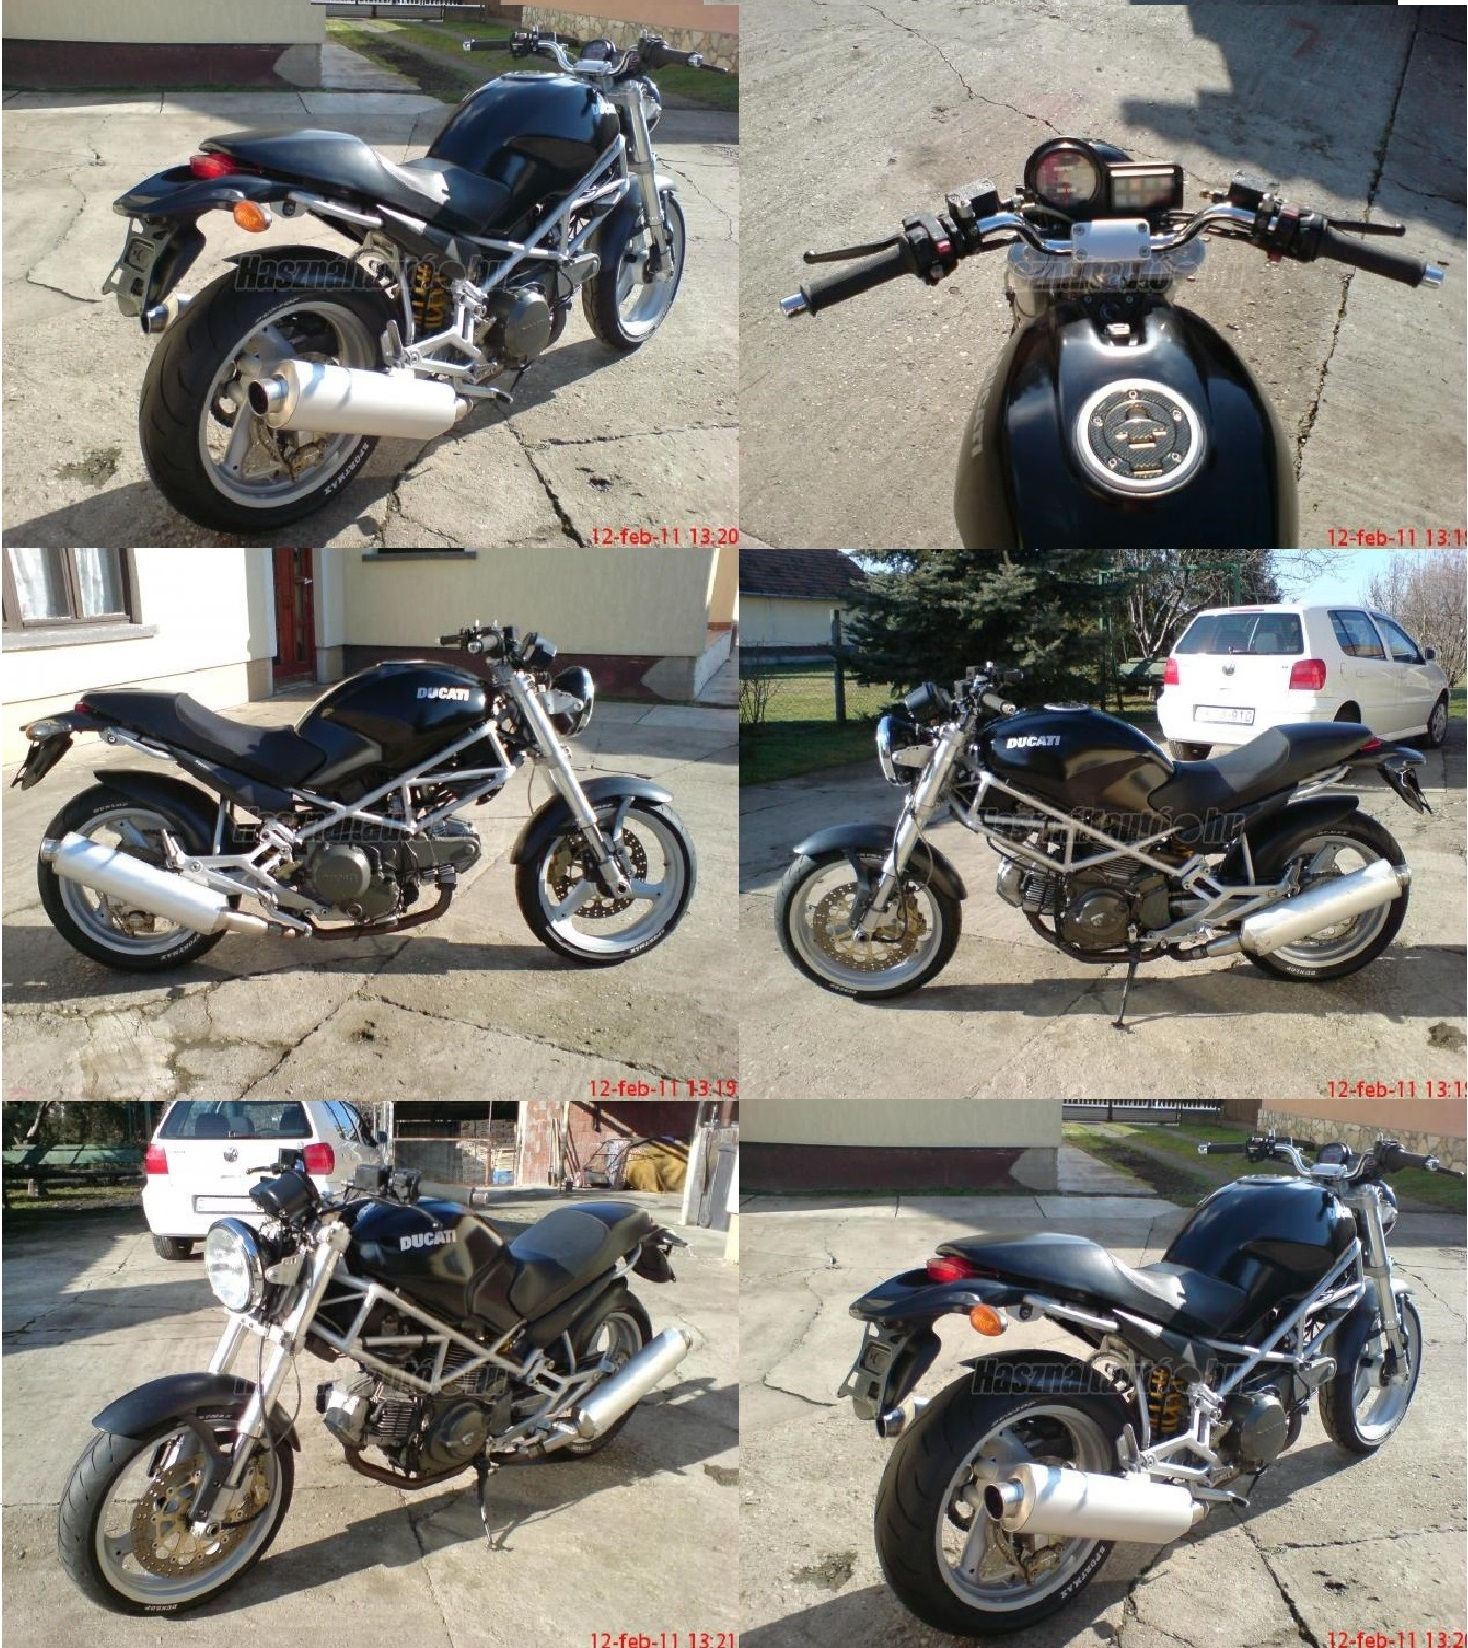 DUCATI MONSTER DARK 600, 8. kép